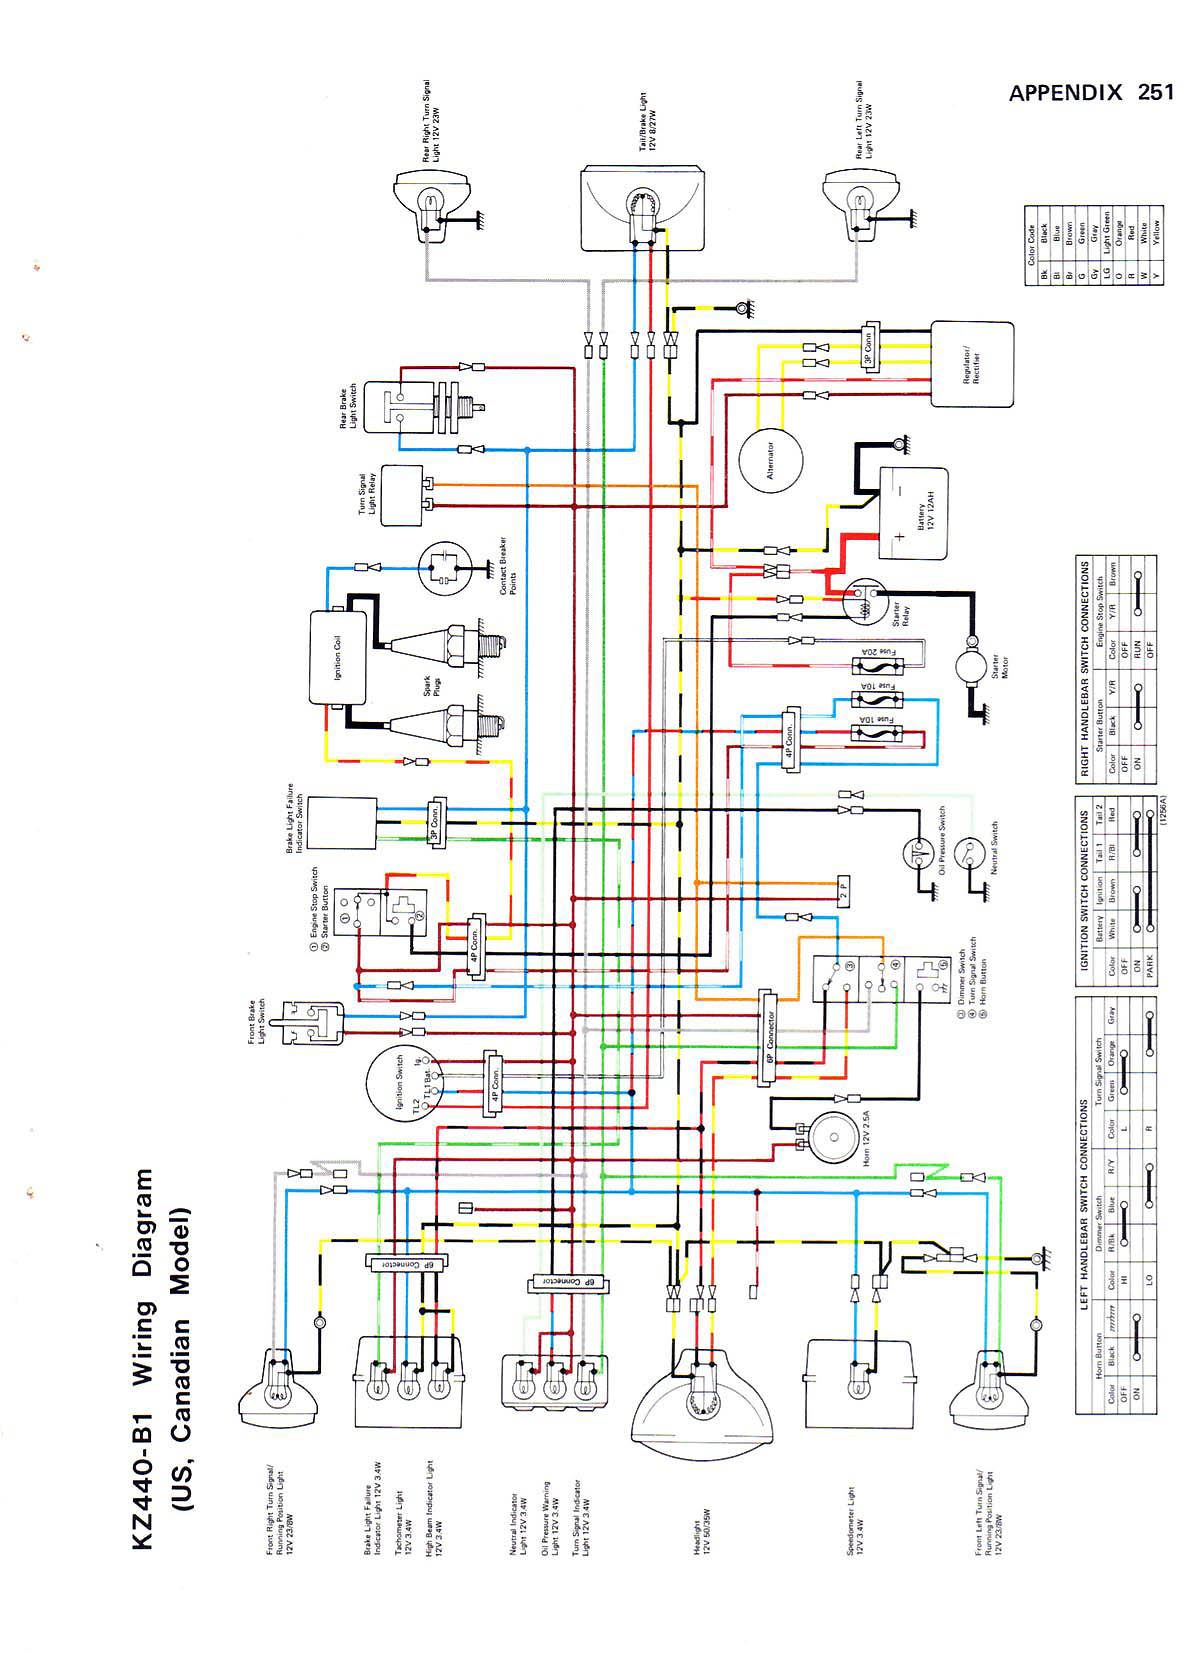 Kawasaki KZ 440 %2780 a %2782 Service Manual_Page_249 index of kz440 wiring diagrams kz400 wiring diagram at alyssarenee.co